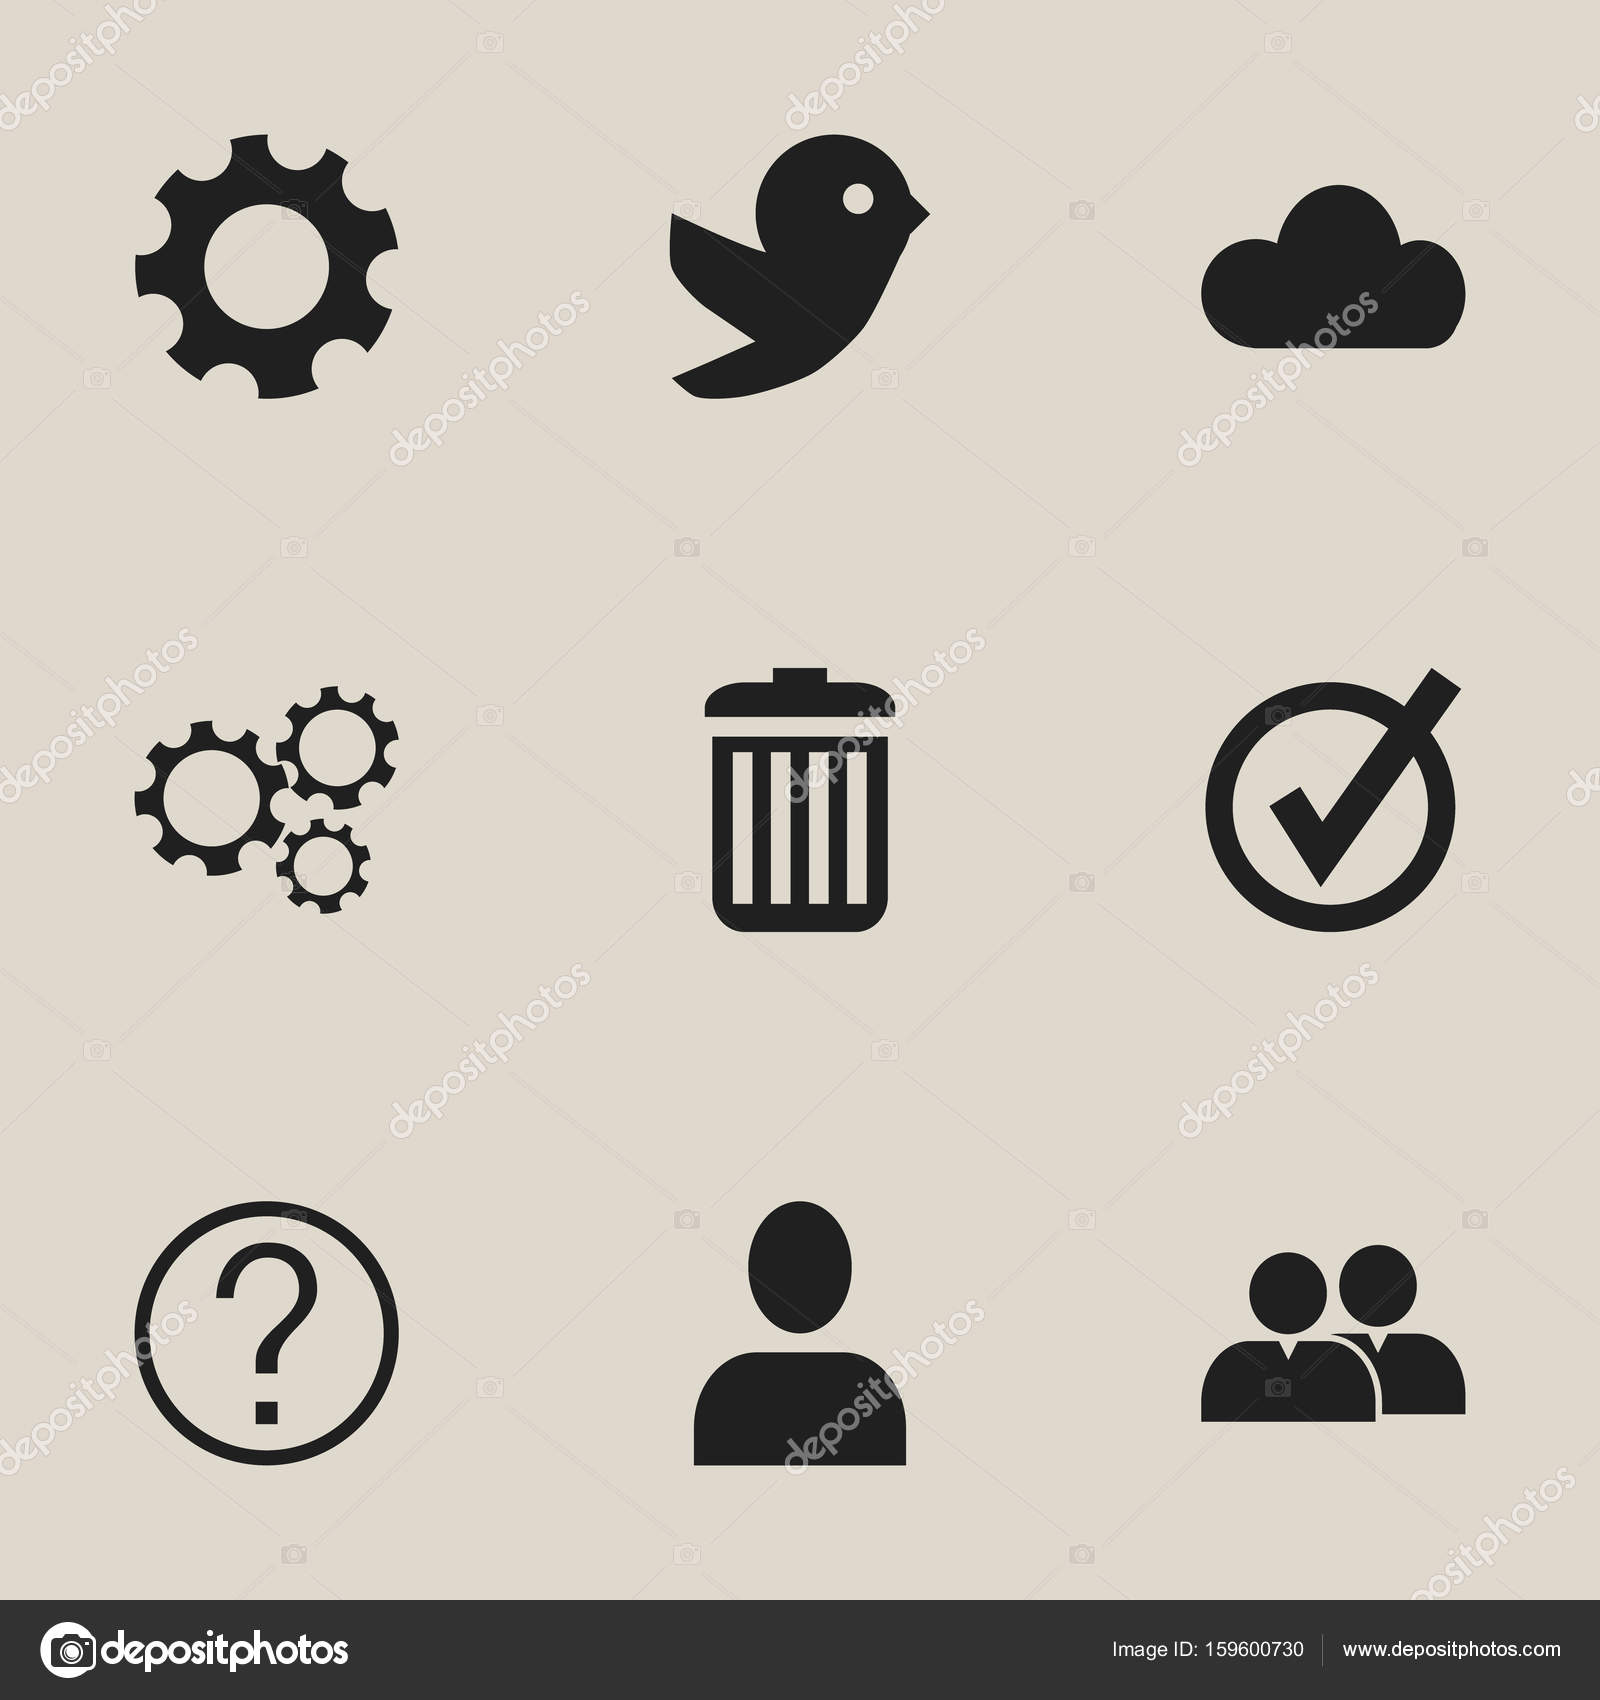 Set of 9 editable internet icons includes symbols such as sky set of 9 editable internet icons includes symbols such as sky group gear and more can be used for web mobile ui and infographic design biocorpaavc